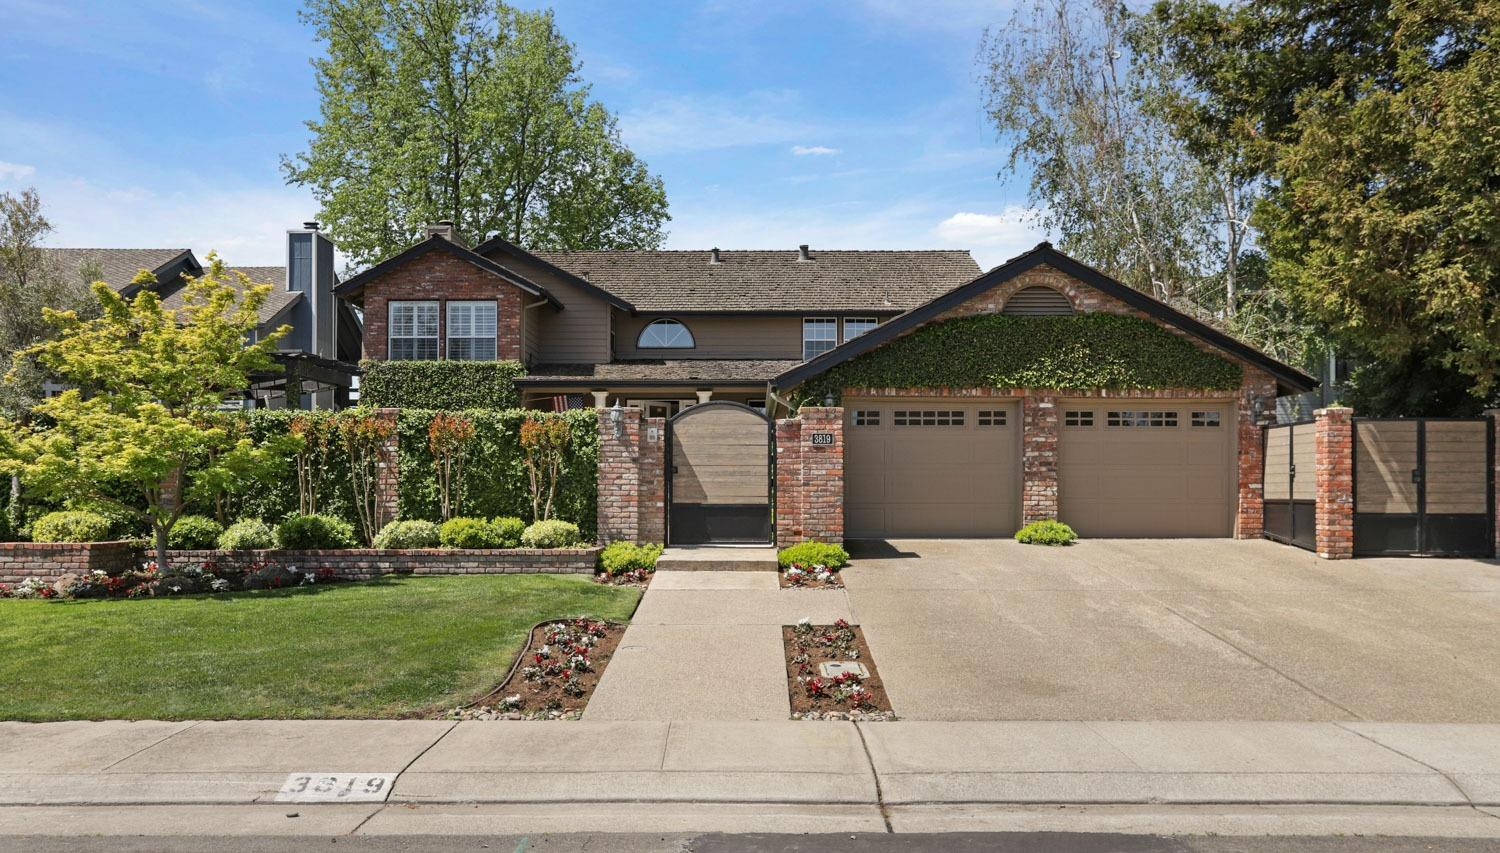 Photo of 3819 Fort Donelson Drive, Stockton, CA 95219